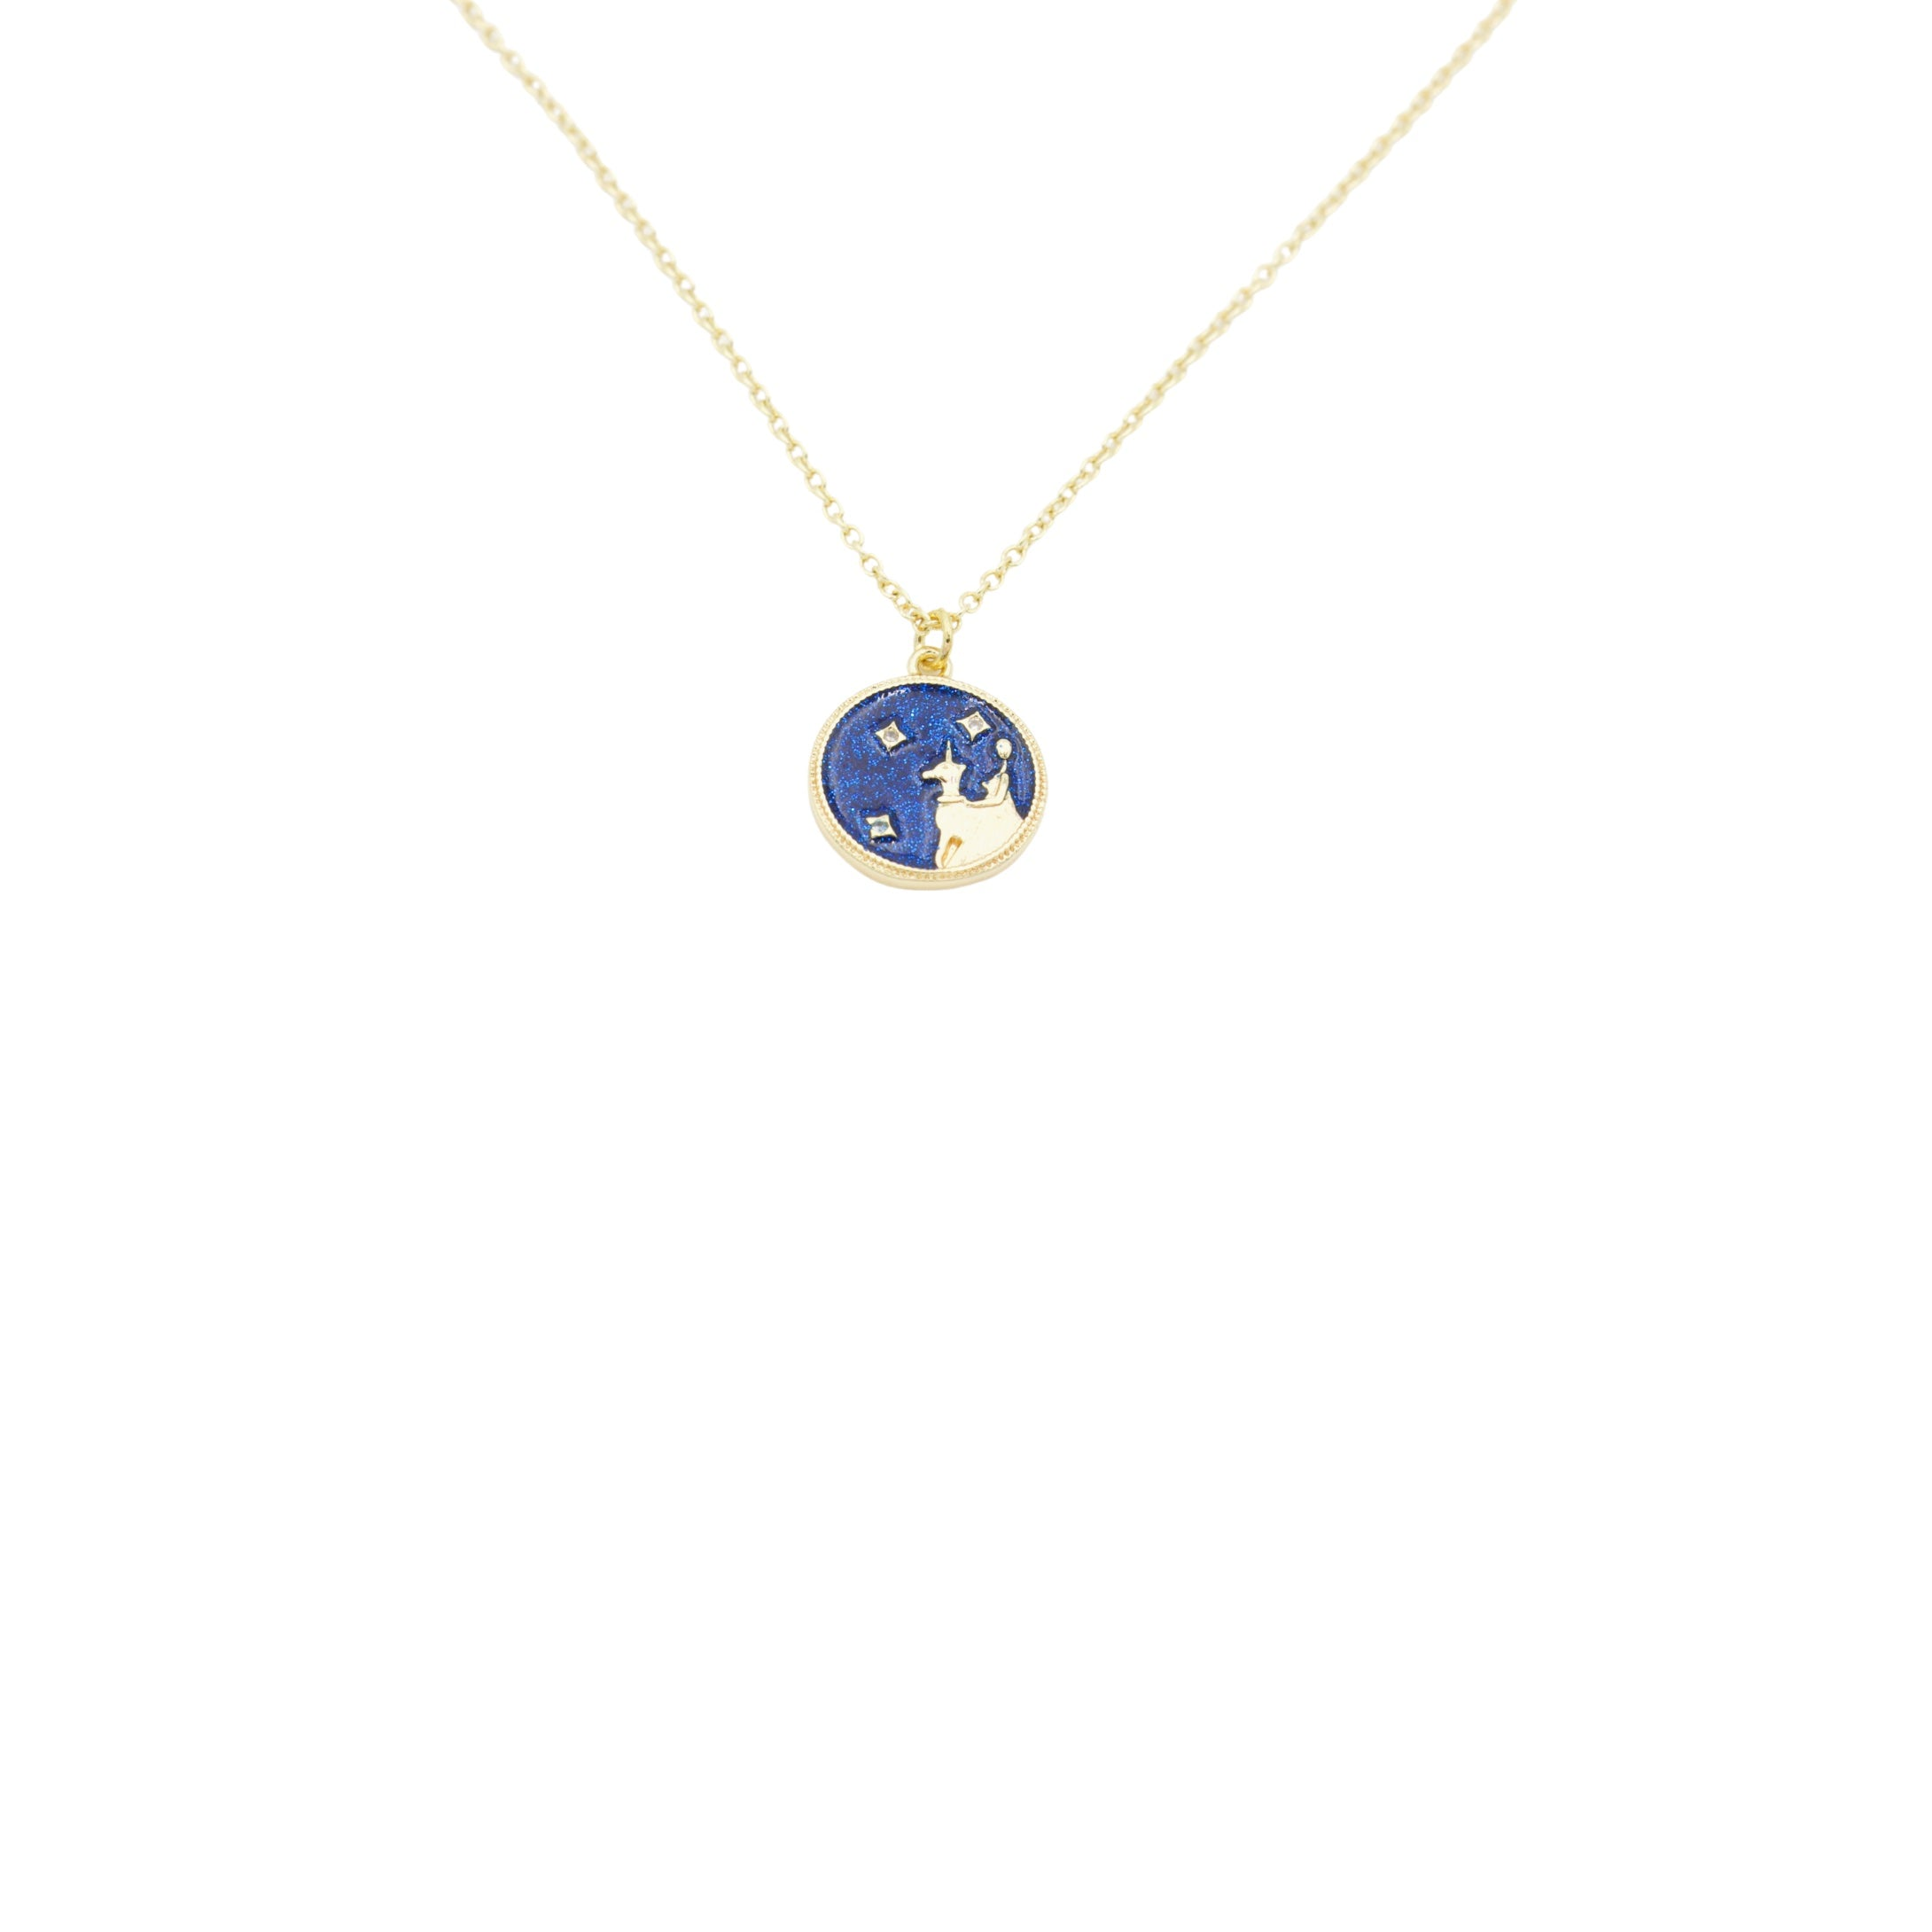 AW Boutique's Zodiac Astro Coin is a dainty pendant full of sparkle and shine.  This piece adds a pop of colour to your everyday wear and at 18 inches is a great length to mix and layer your other chains with.  Proudly wear either your own star sign or the star sign of a loved one close to your heart.  Zodiac shown is Virgo.